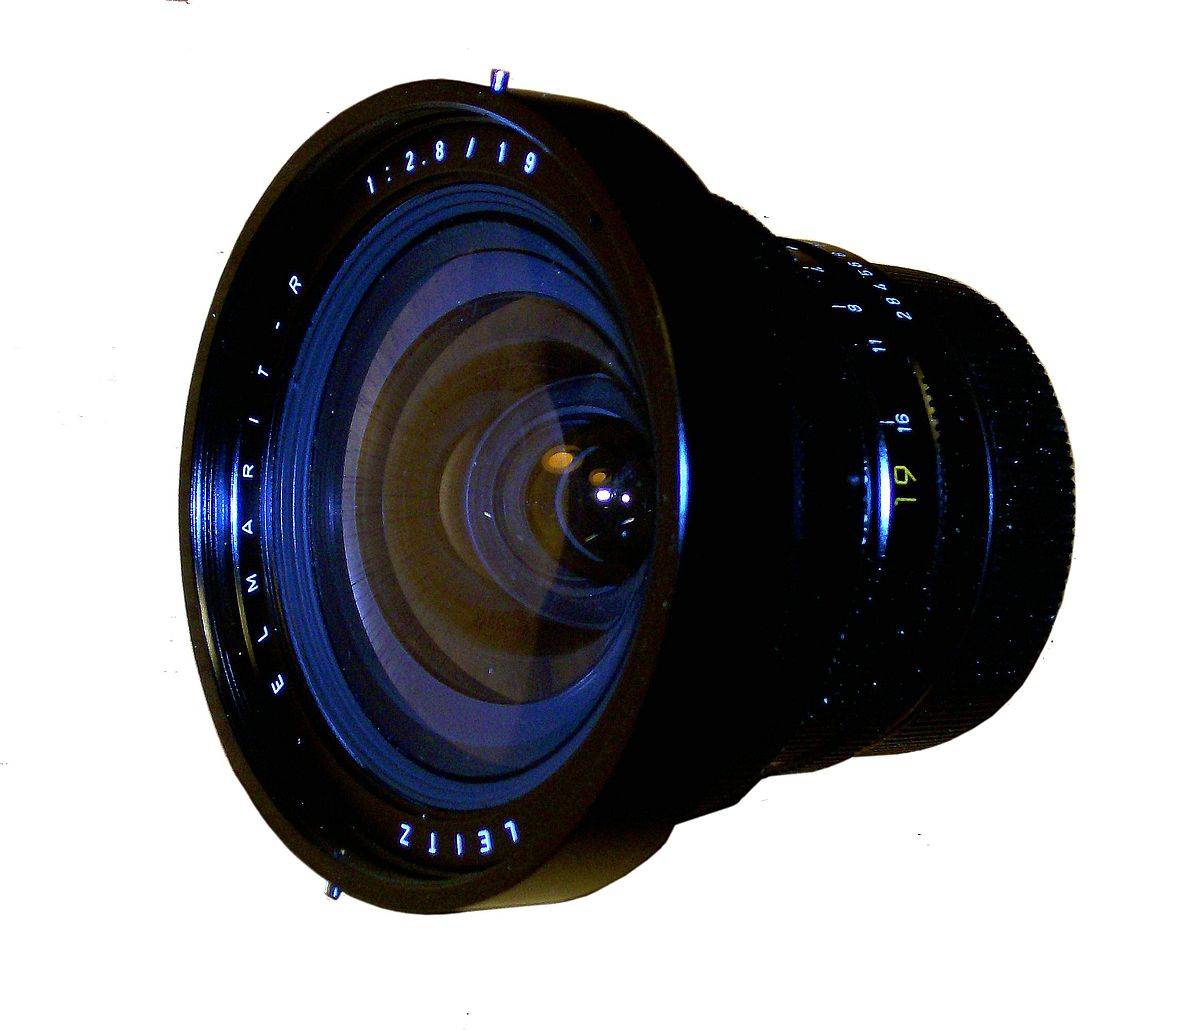 Ultra Wide Angle Lens Wikipedia